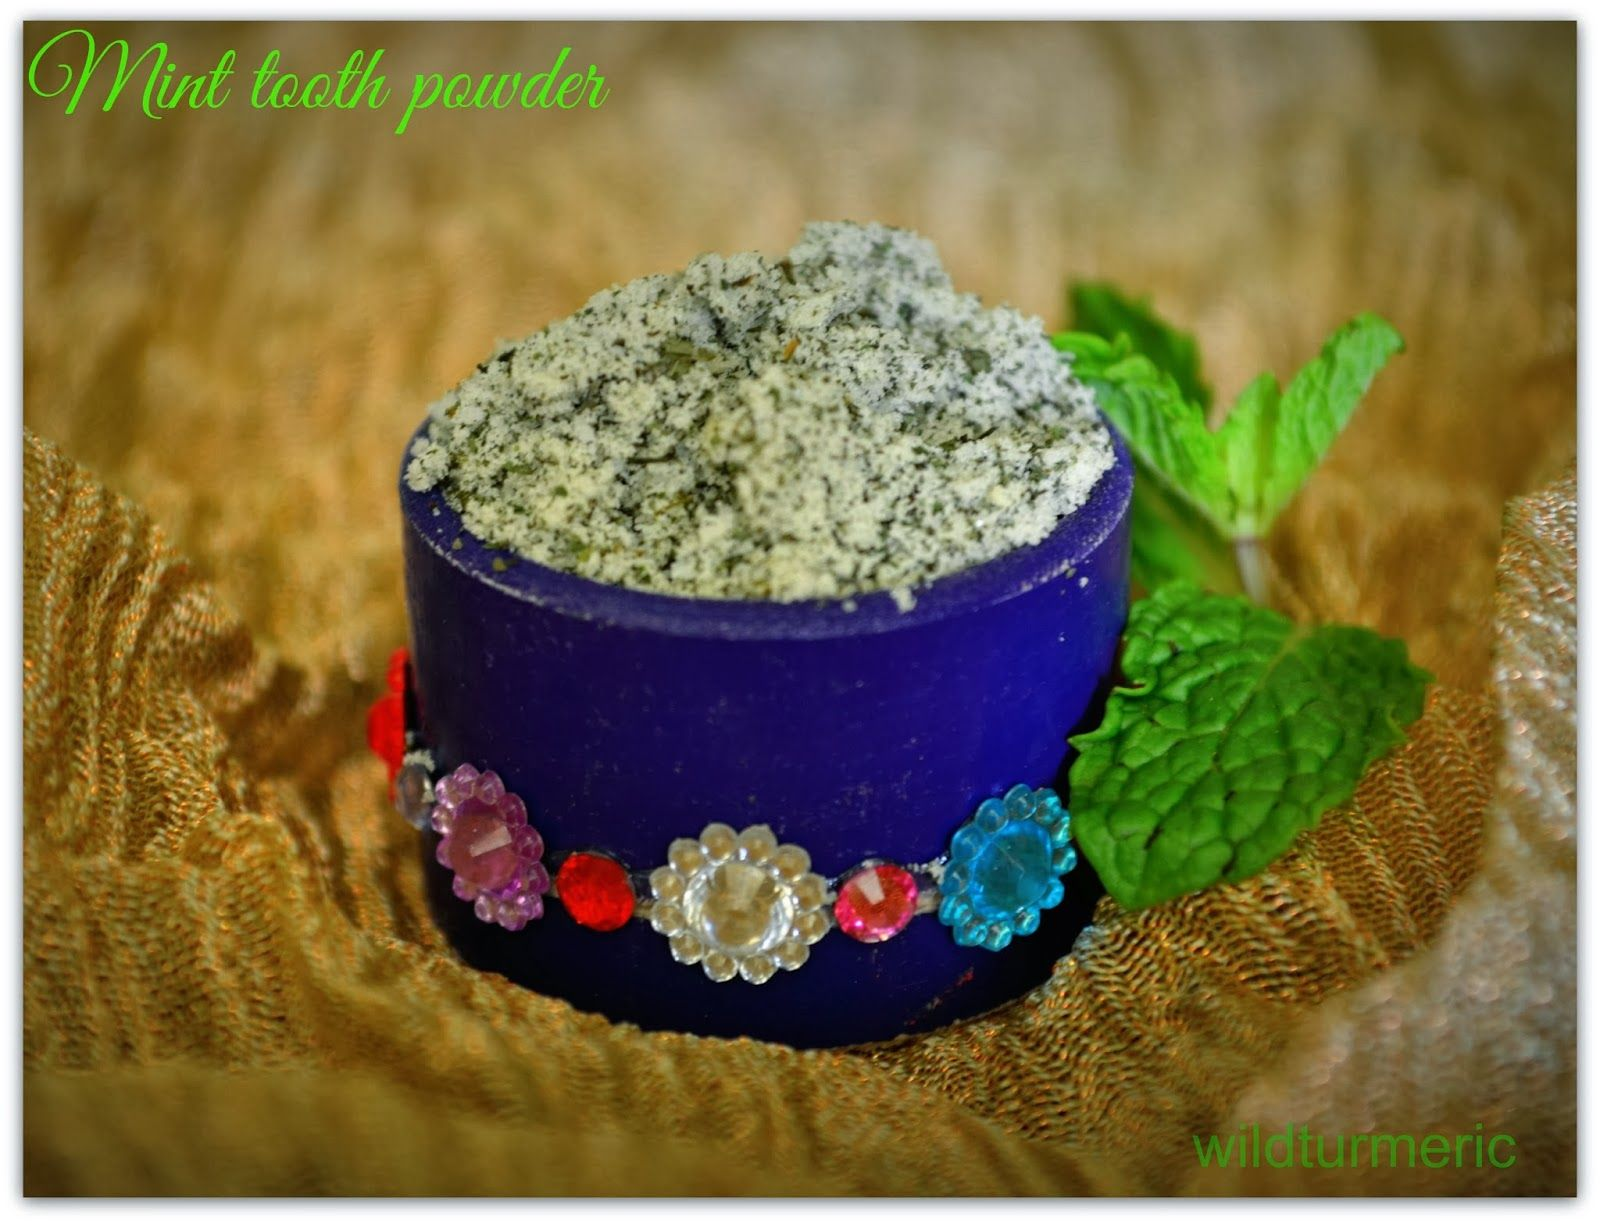 Diy homemade salt mint tooth powder recipe with images